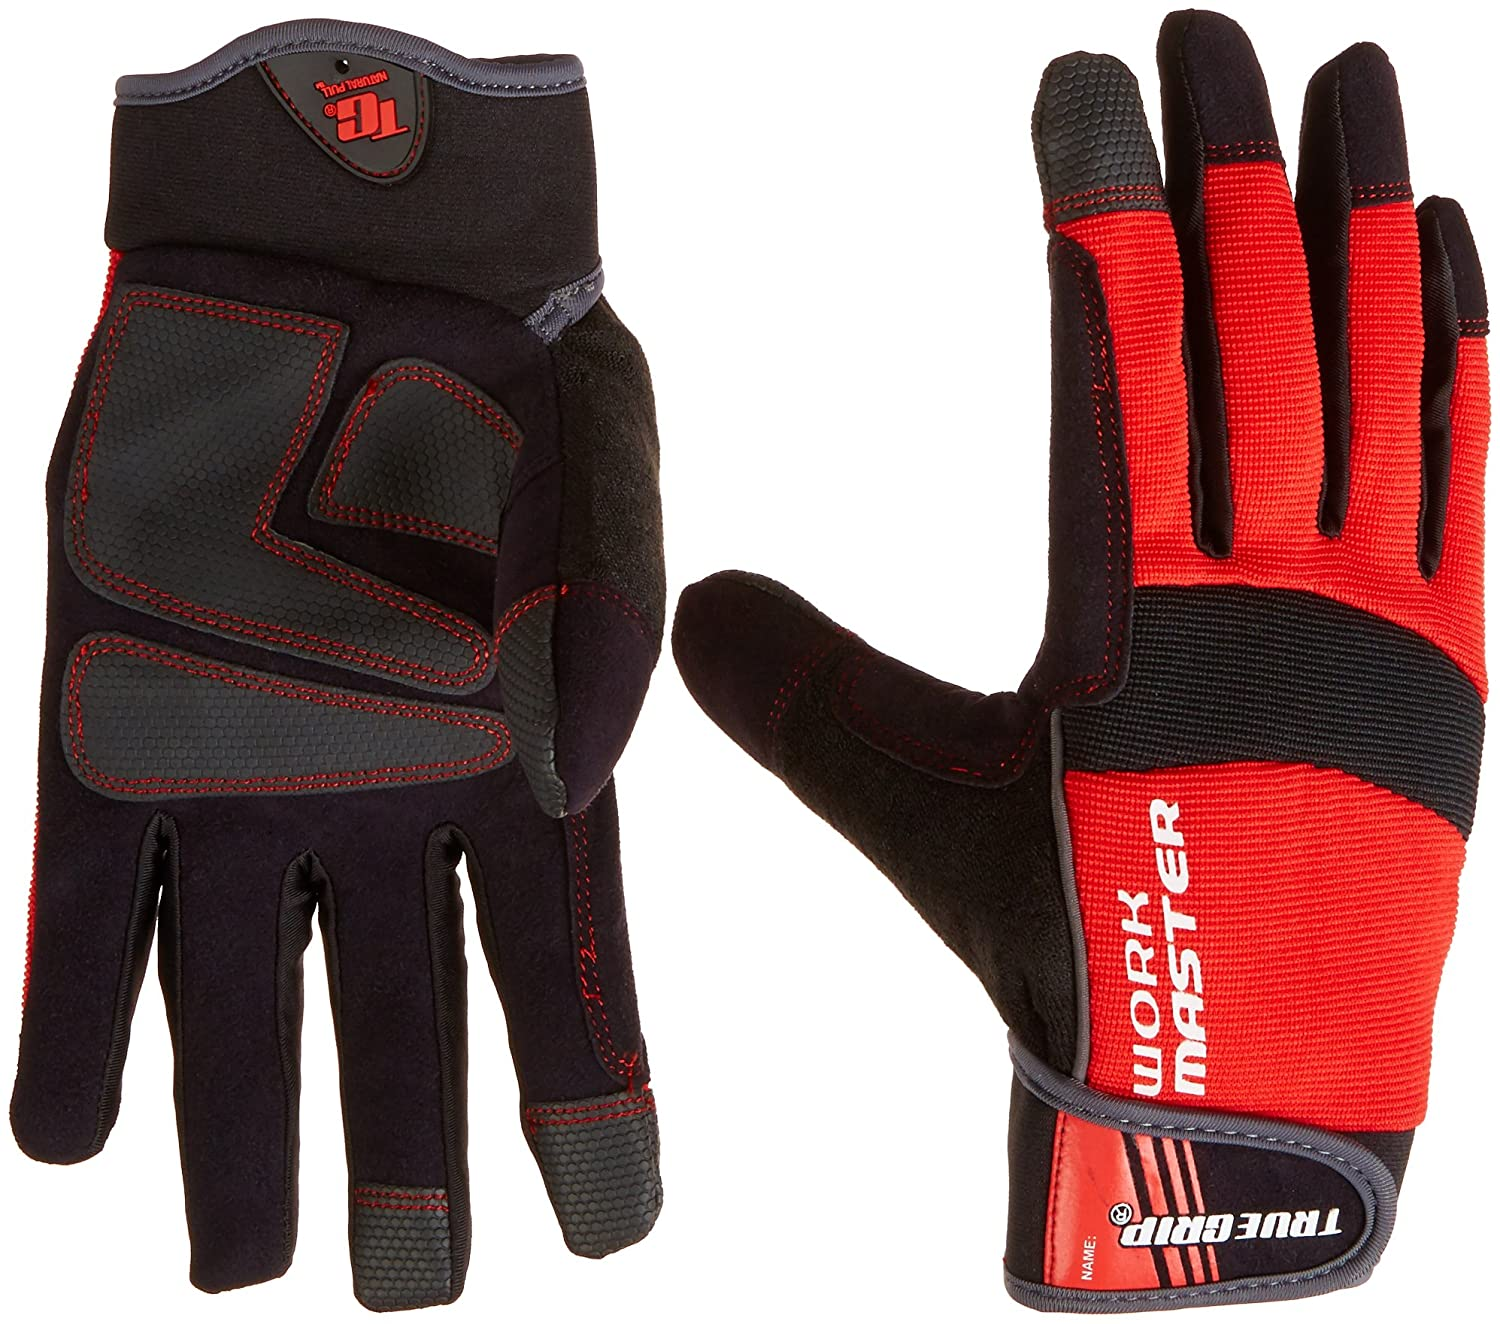 True Grip 9824-23 X-Large Work Master Gloves with Touchscreen Fingers, Red/Black